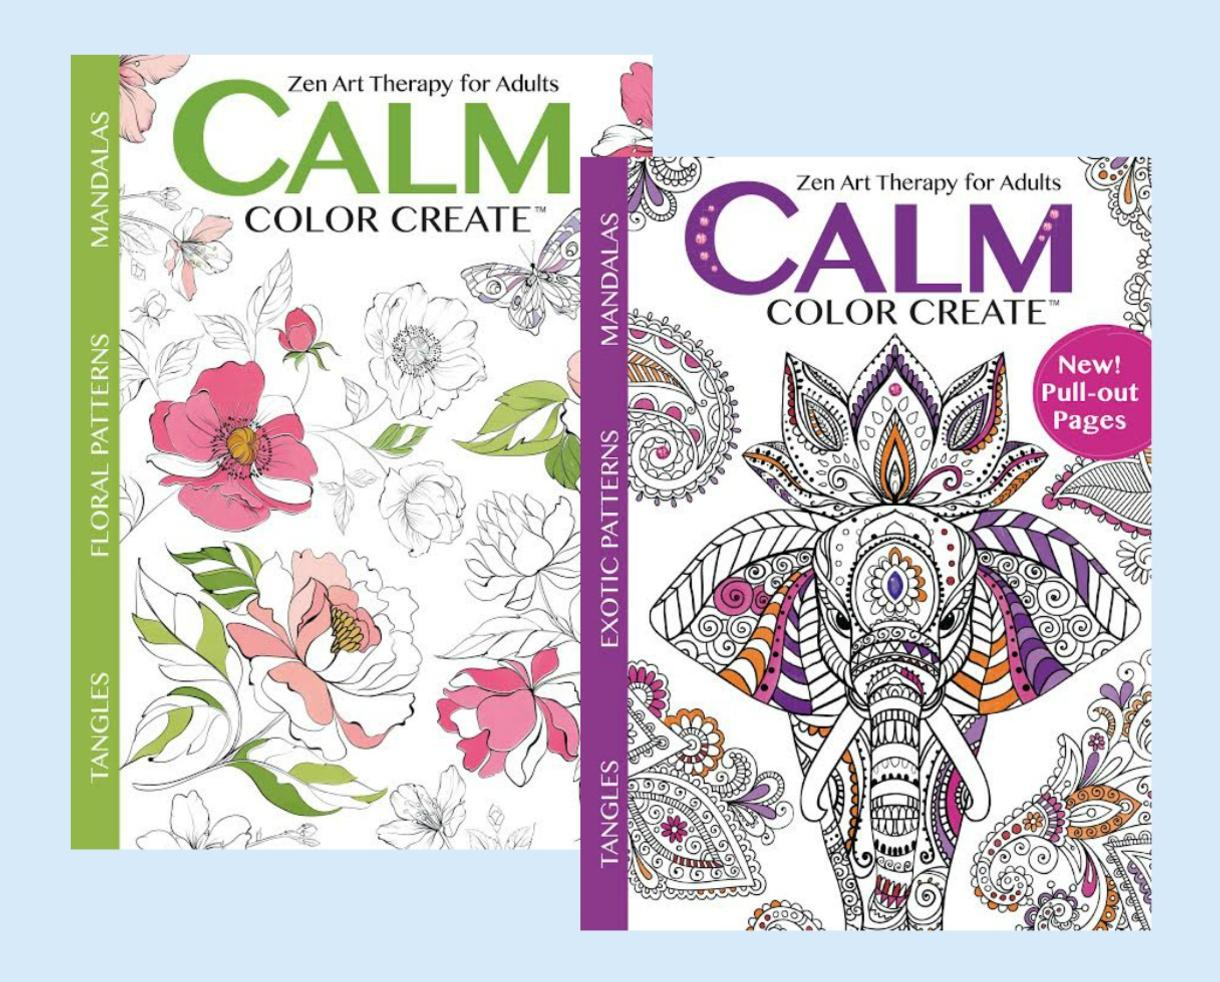 Color zen magazine -  29 99 For 1 Year Subscription To Calm Color Create Magazine 15 Off